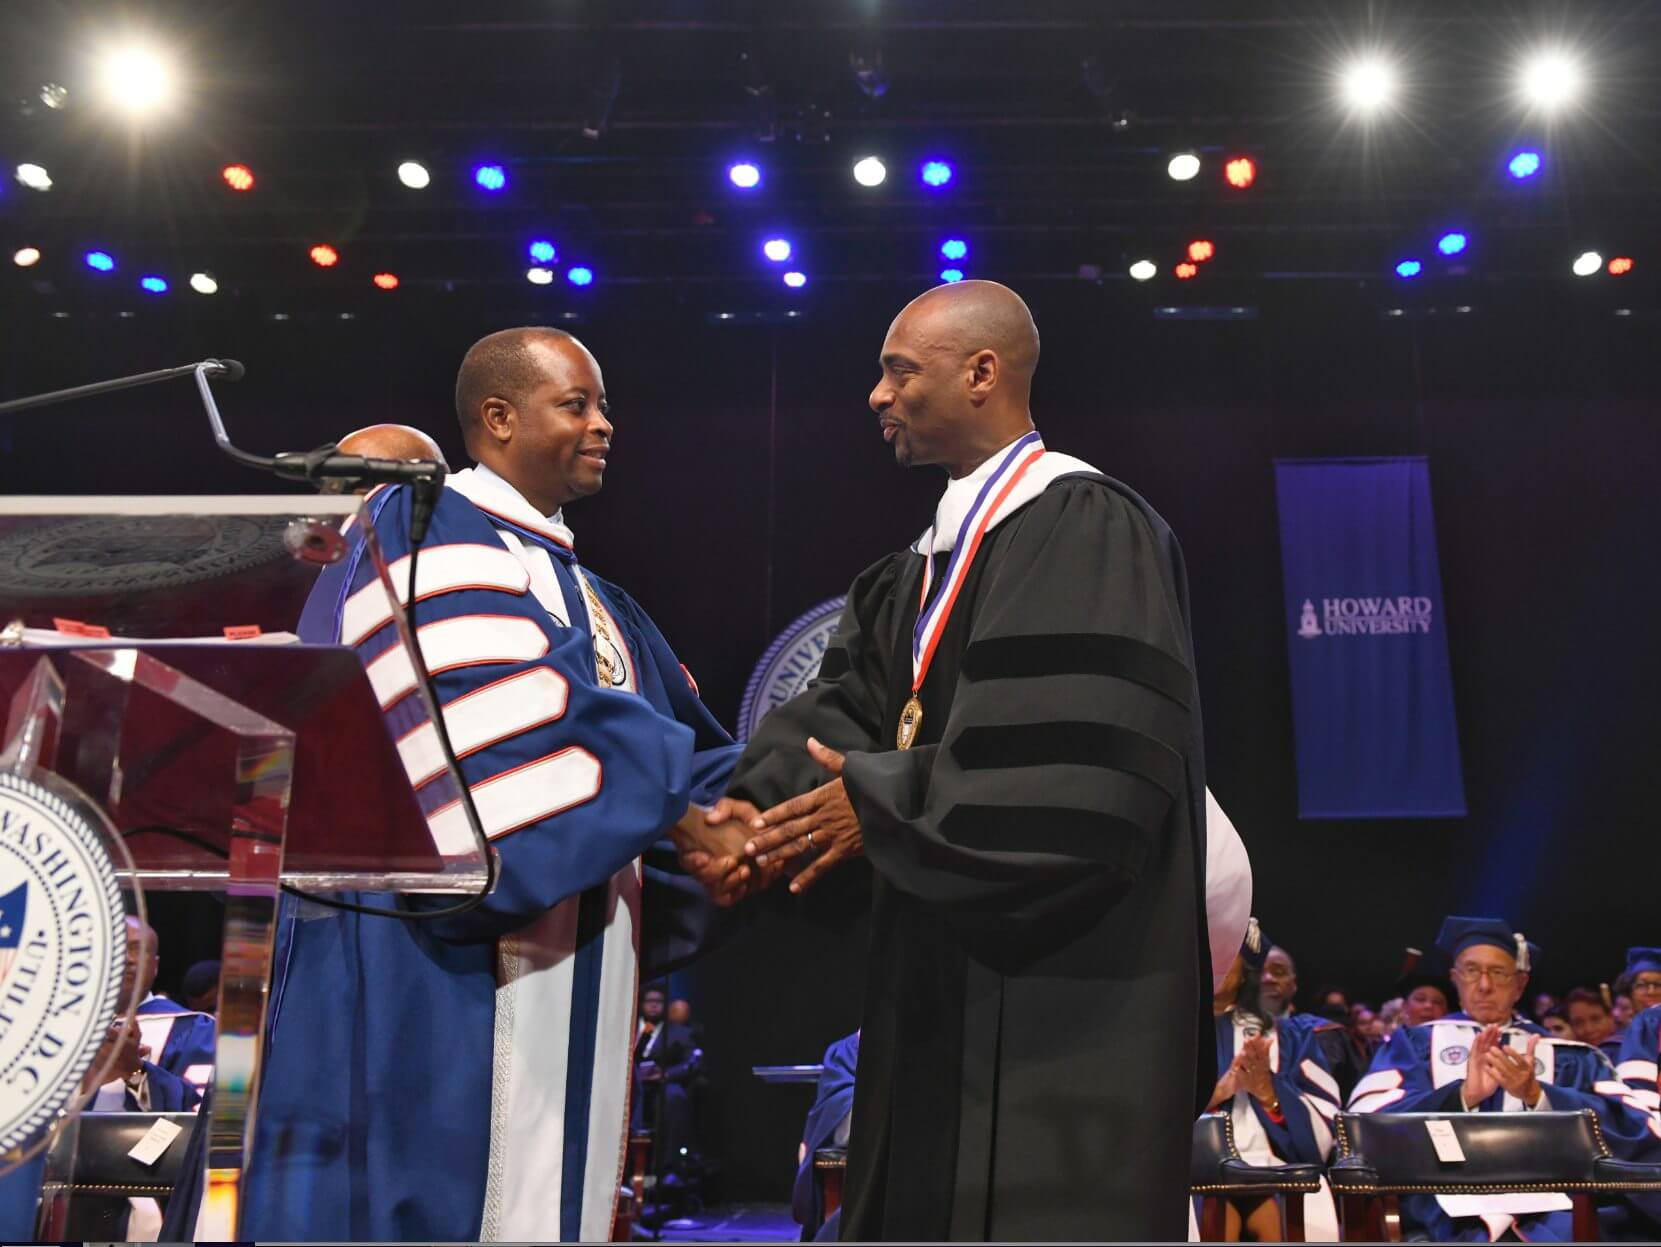 Howard Students Called To Follow Their Dreams At Convocation